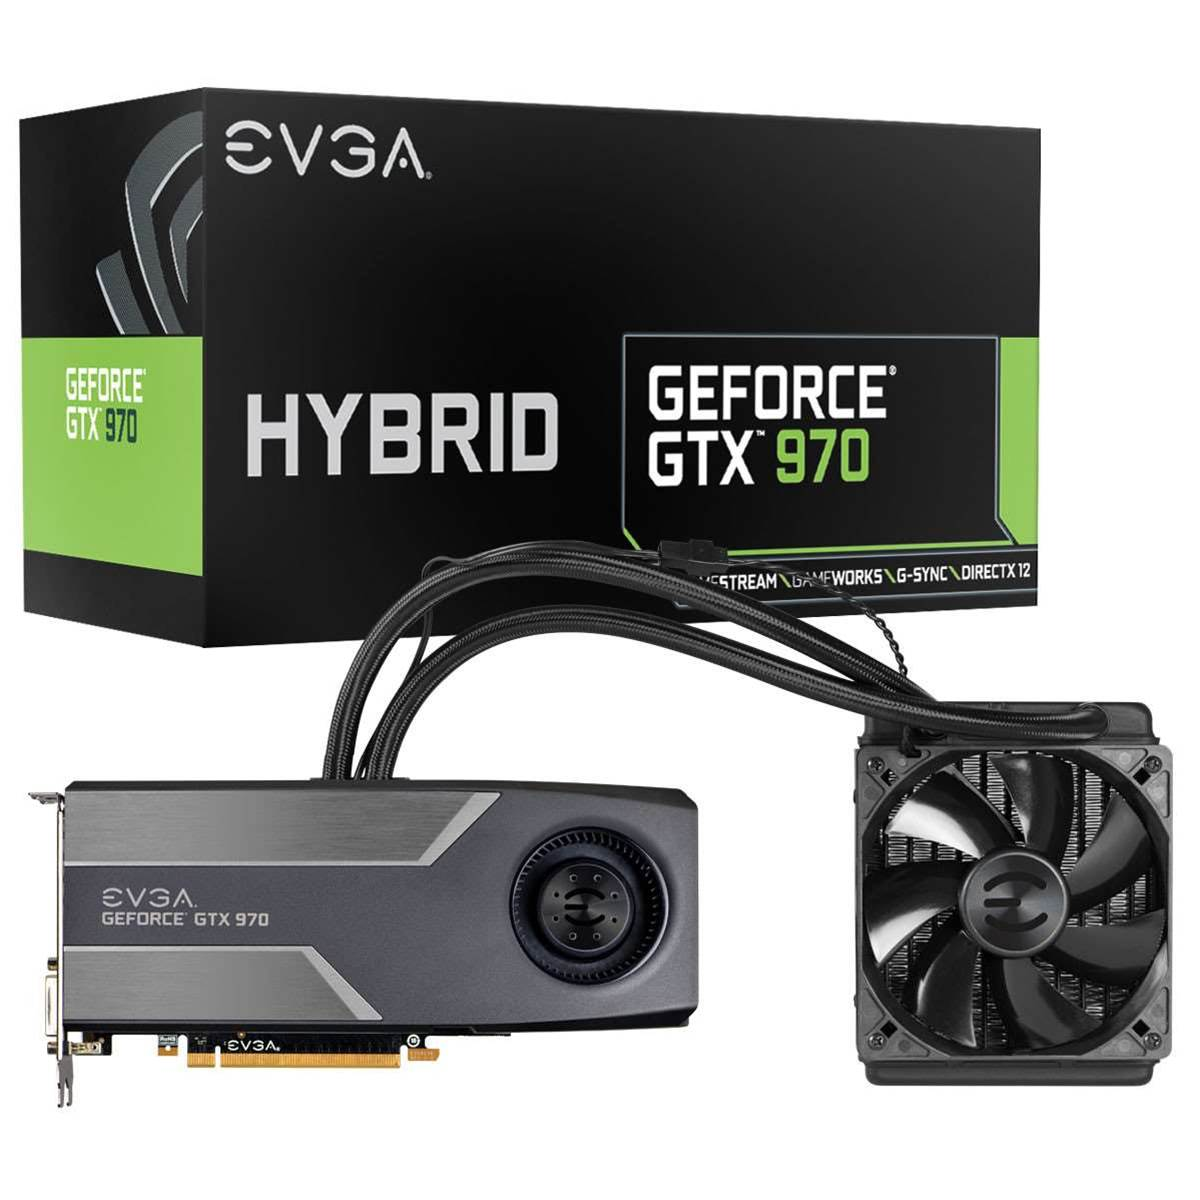 EVGA releases new water-cooled GTX 970